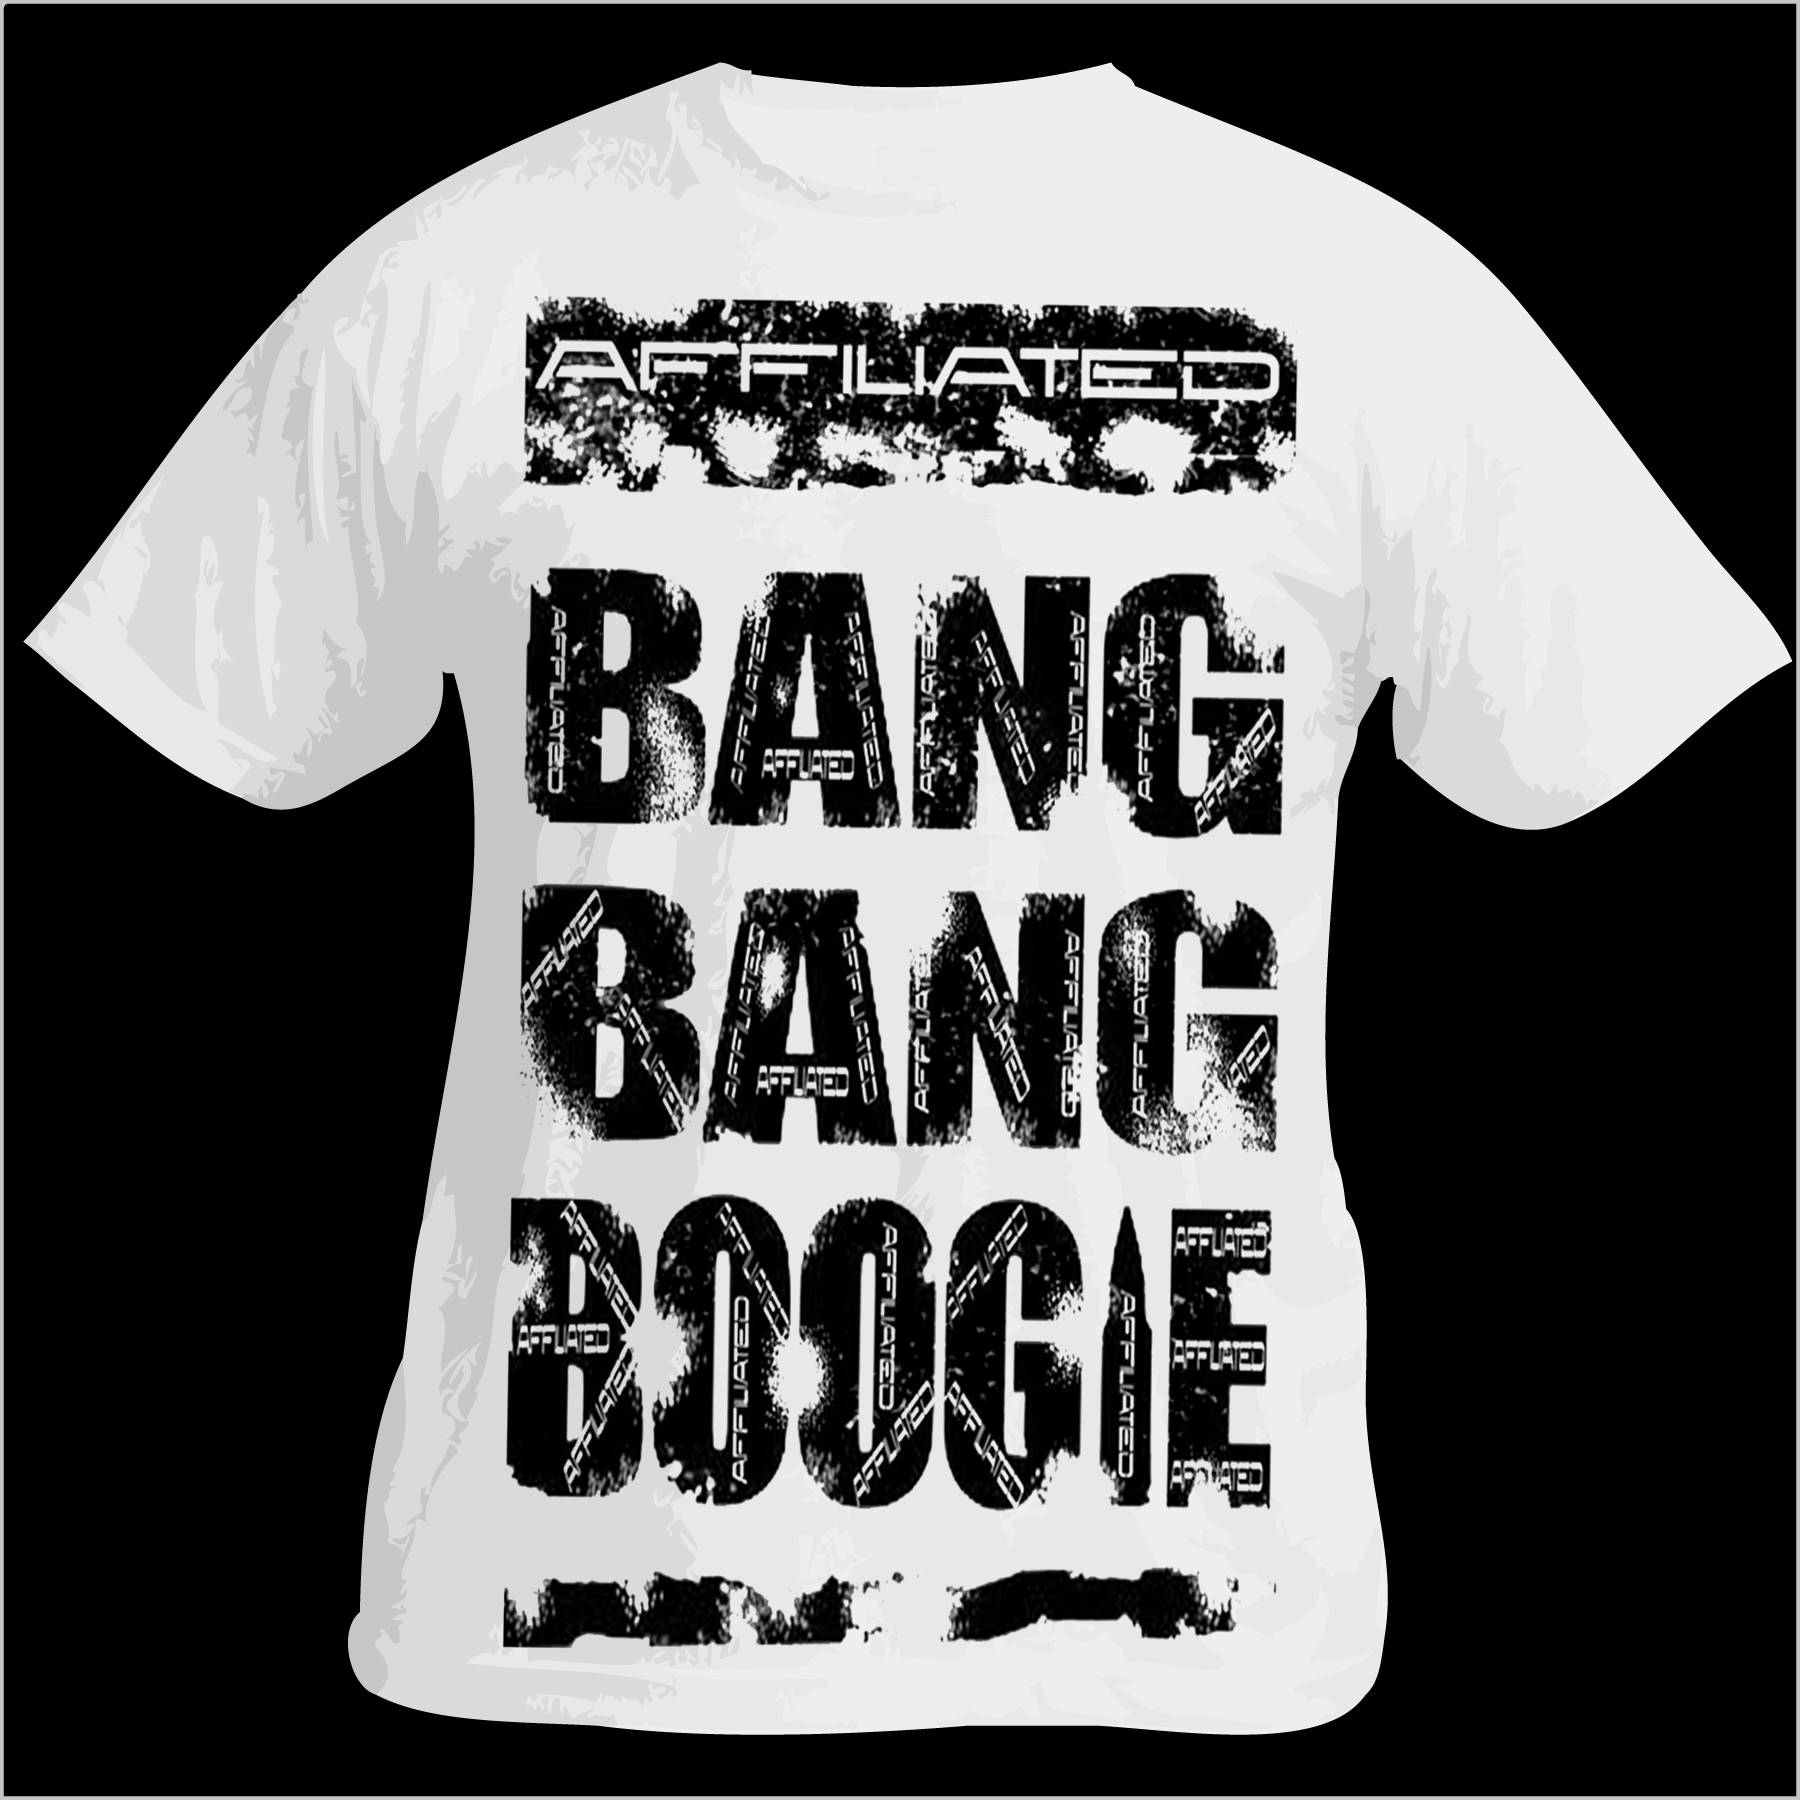 Affiliated_20designs_20bang_20bang_20boogie_20t_20print_original